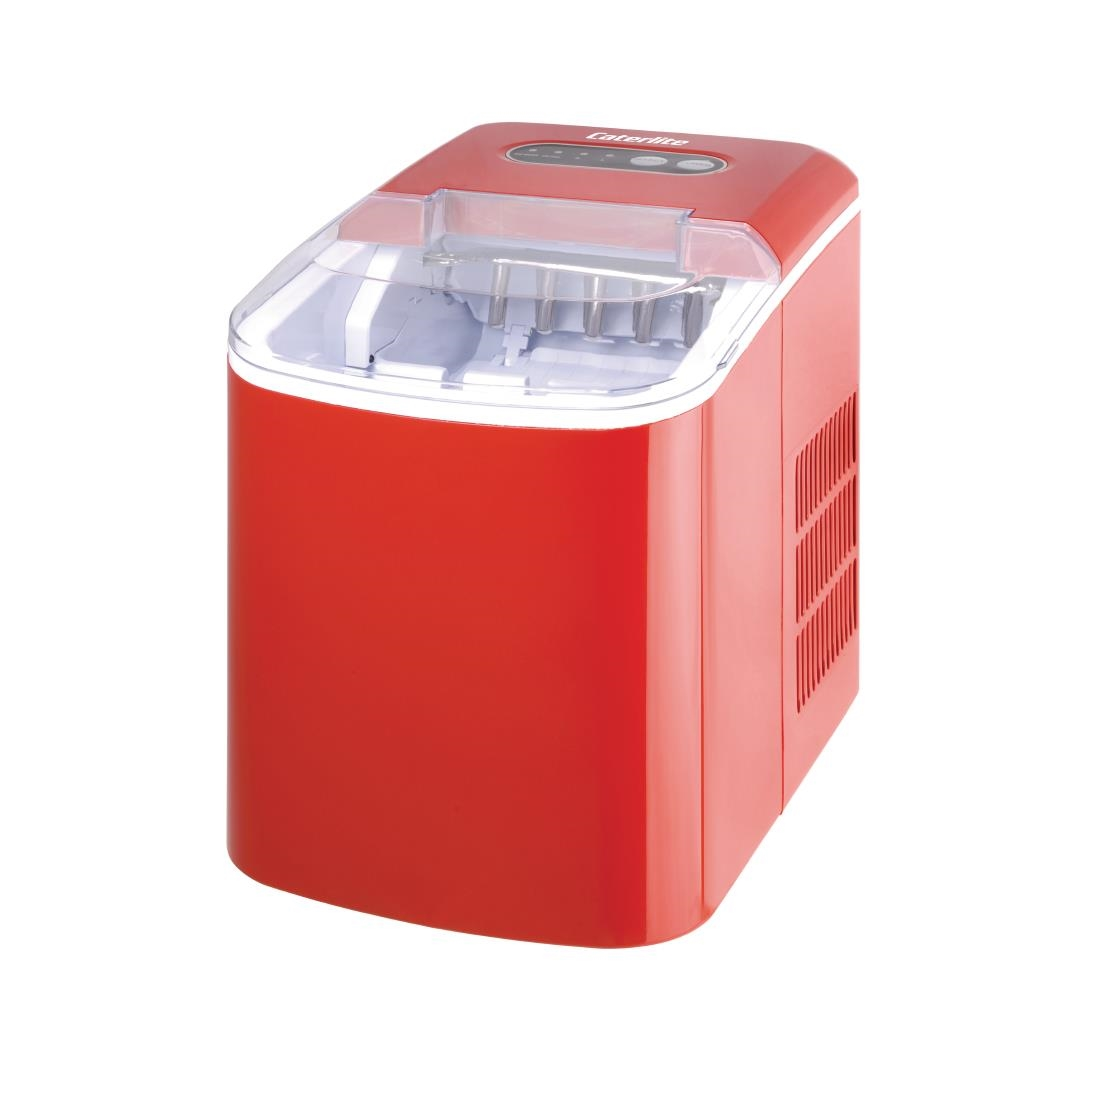 Image of Caterlite Countertop Manual Fill Ice Machine Red